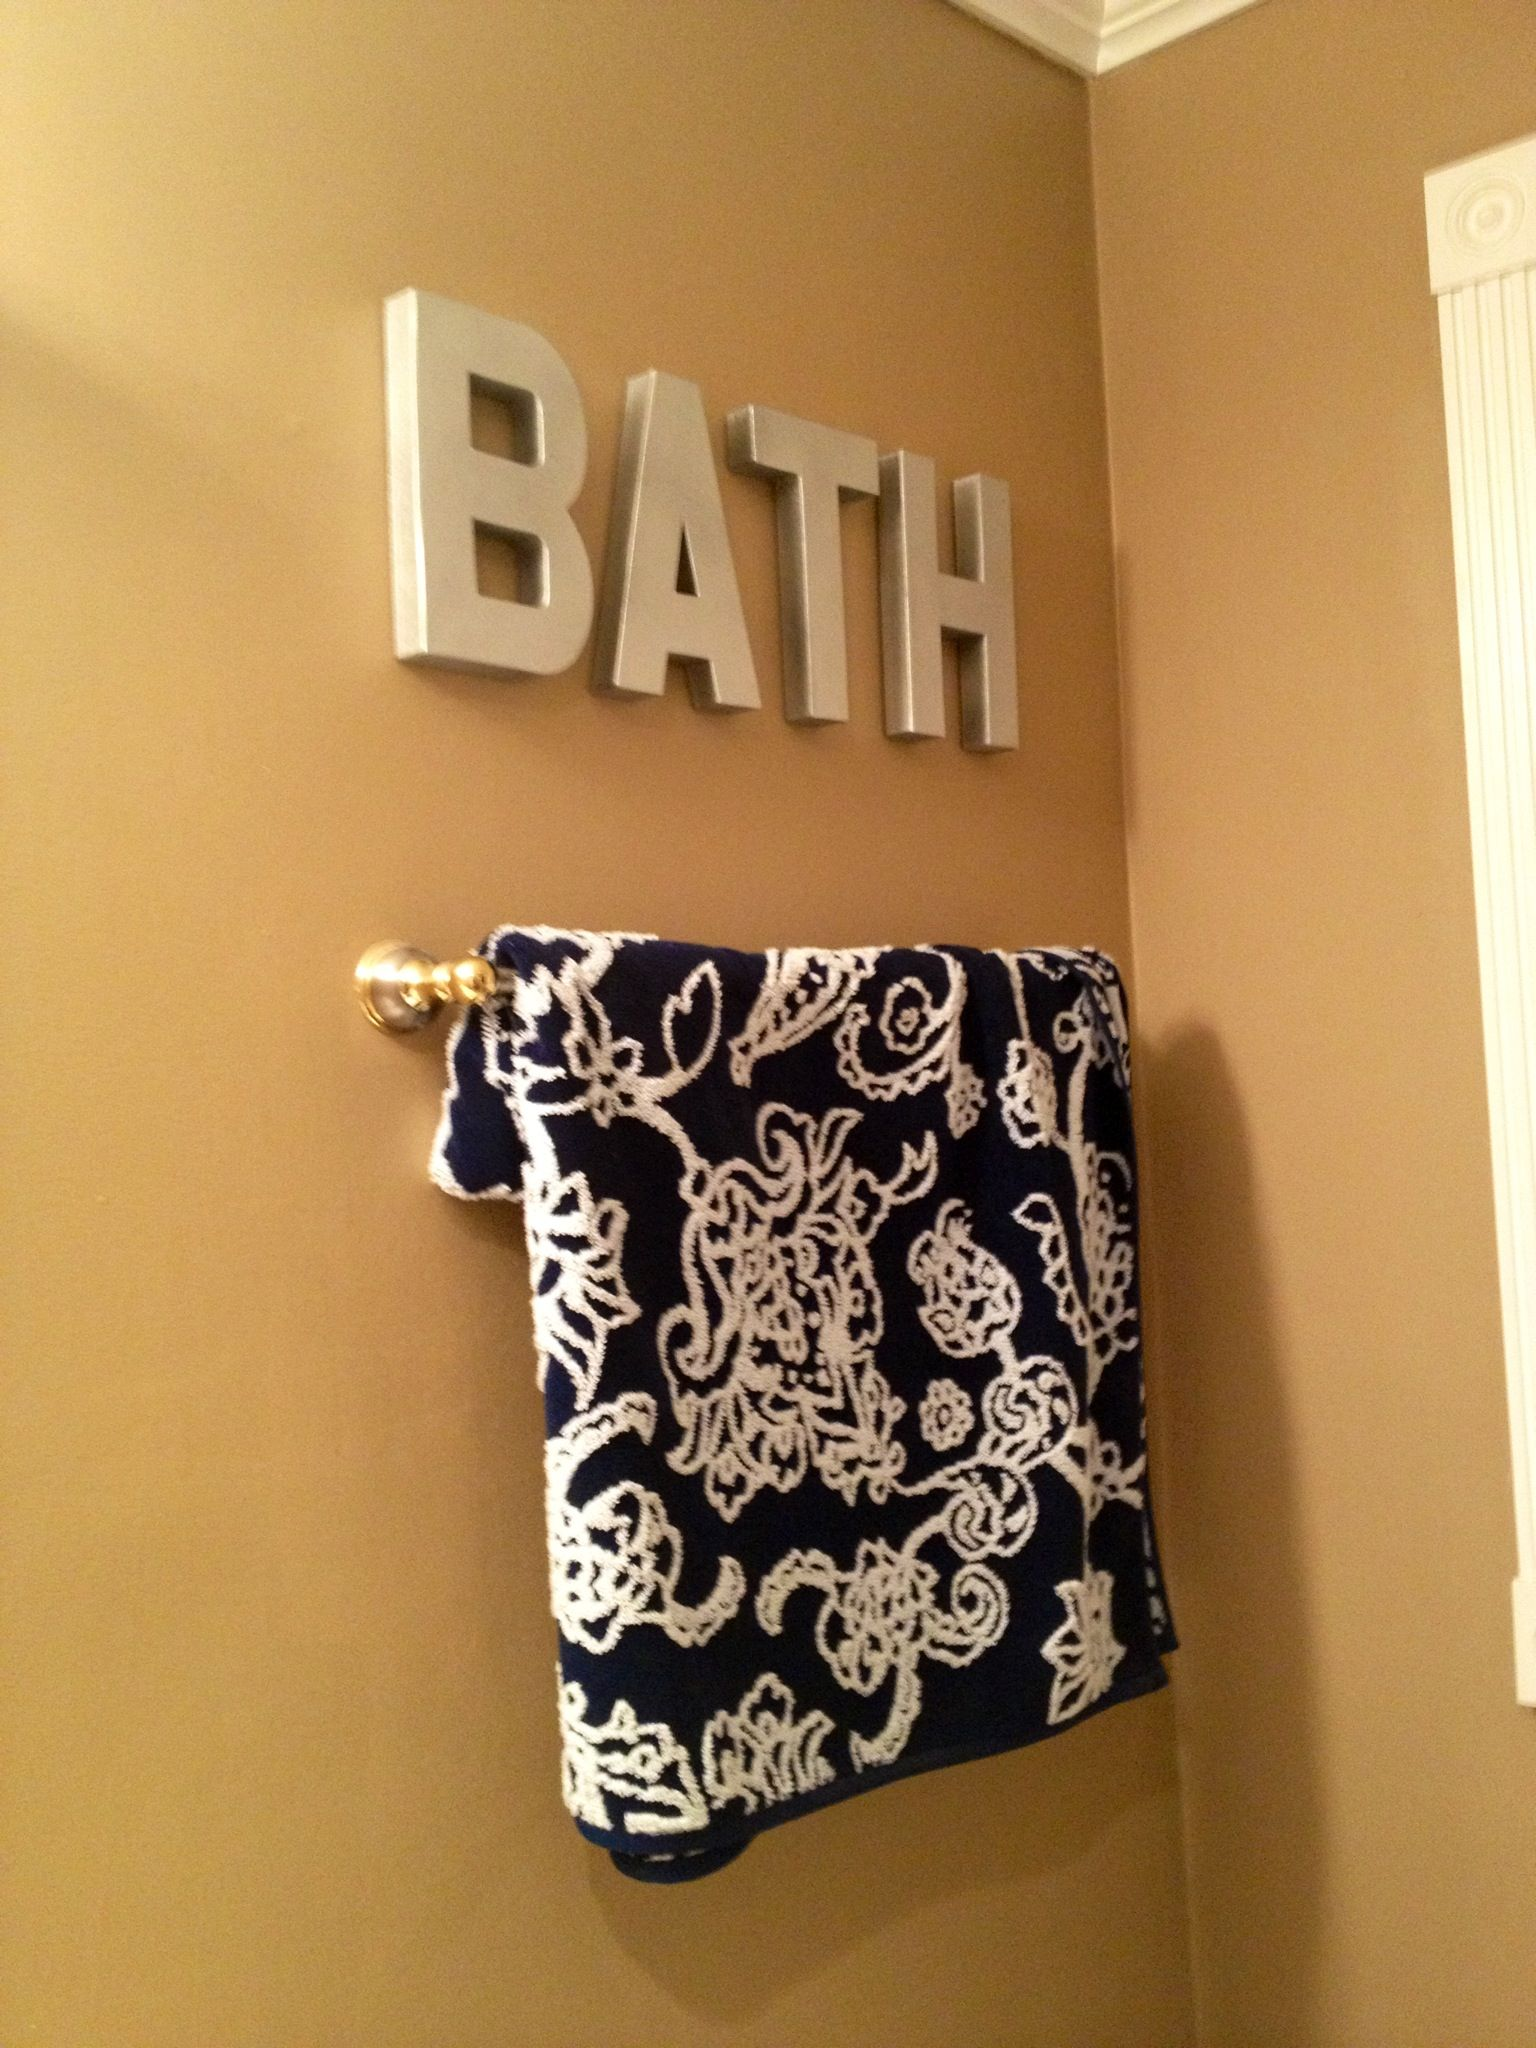 BATH cardboard letters from Hobby Lobby painted black & then